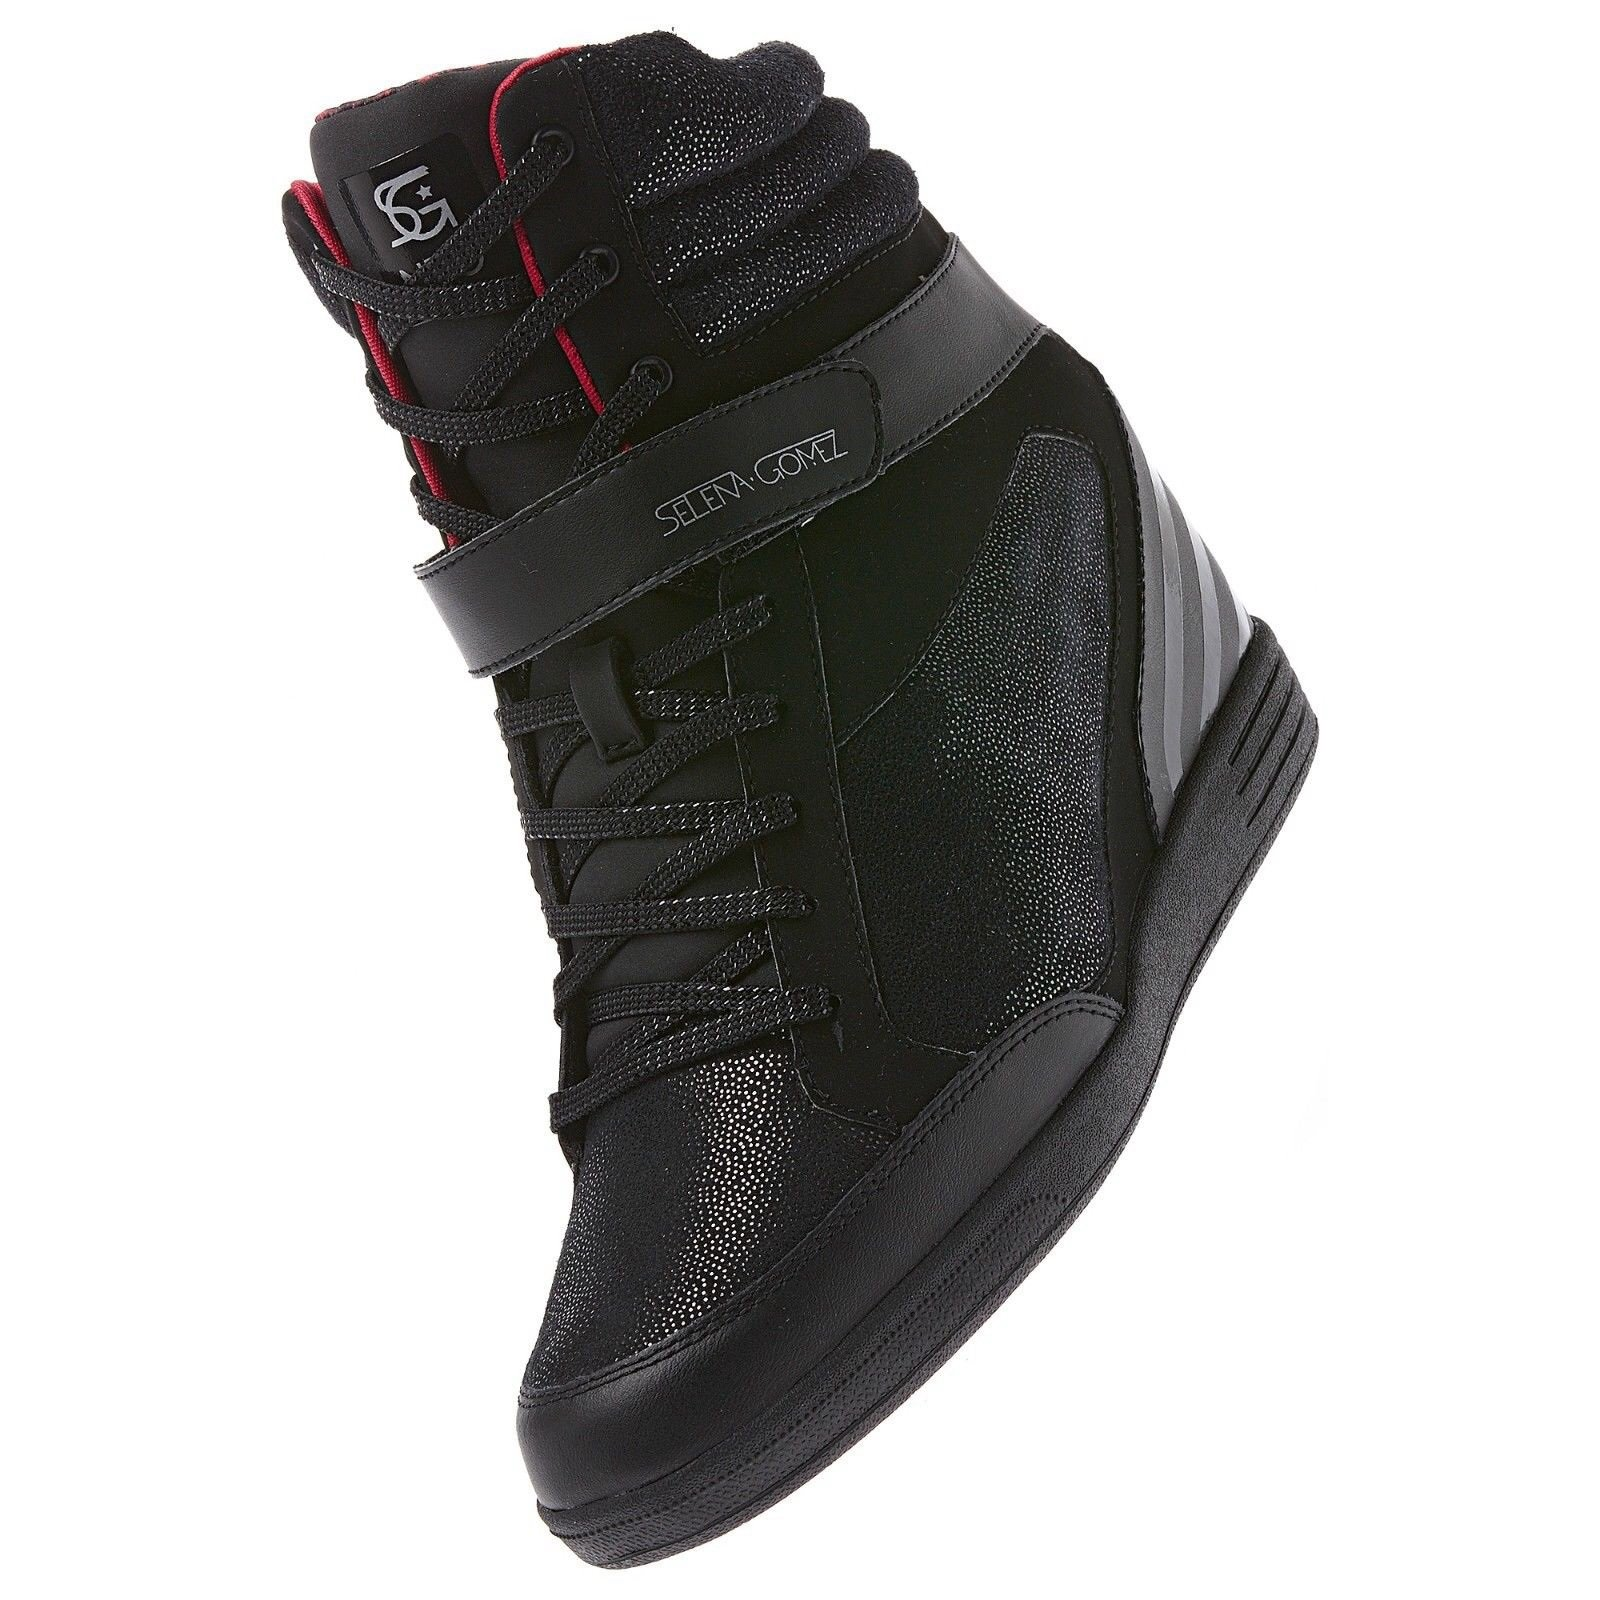 speical offer buying now wide range Galleon - Adidas NEO Selena Gomez Super Wedge Hi SG Leather ...